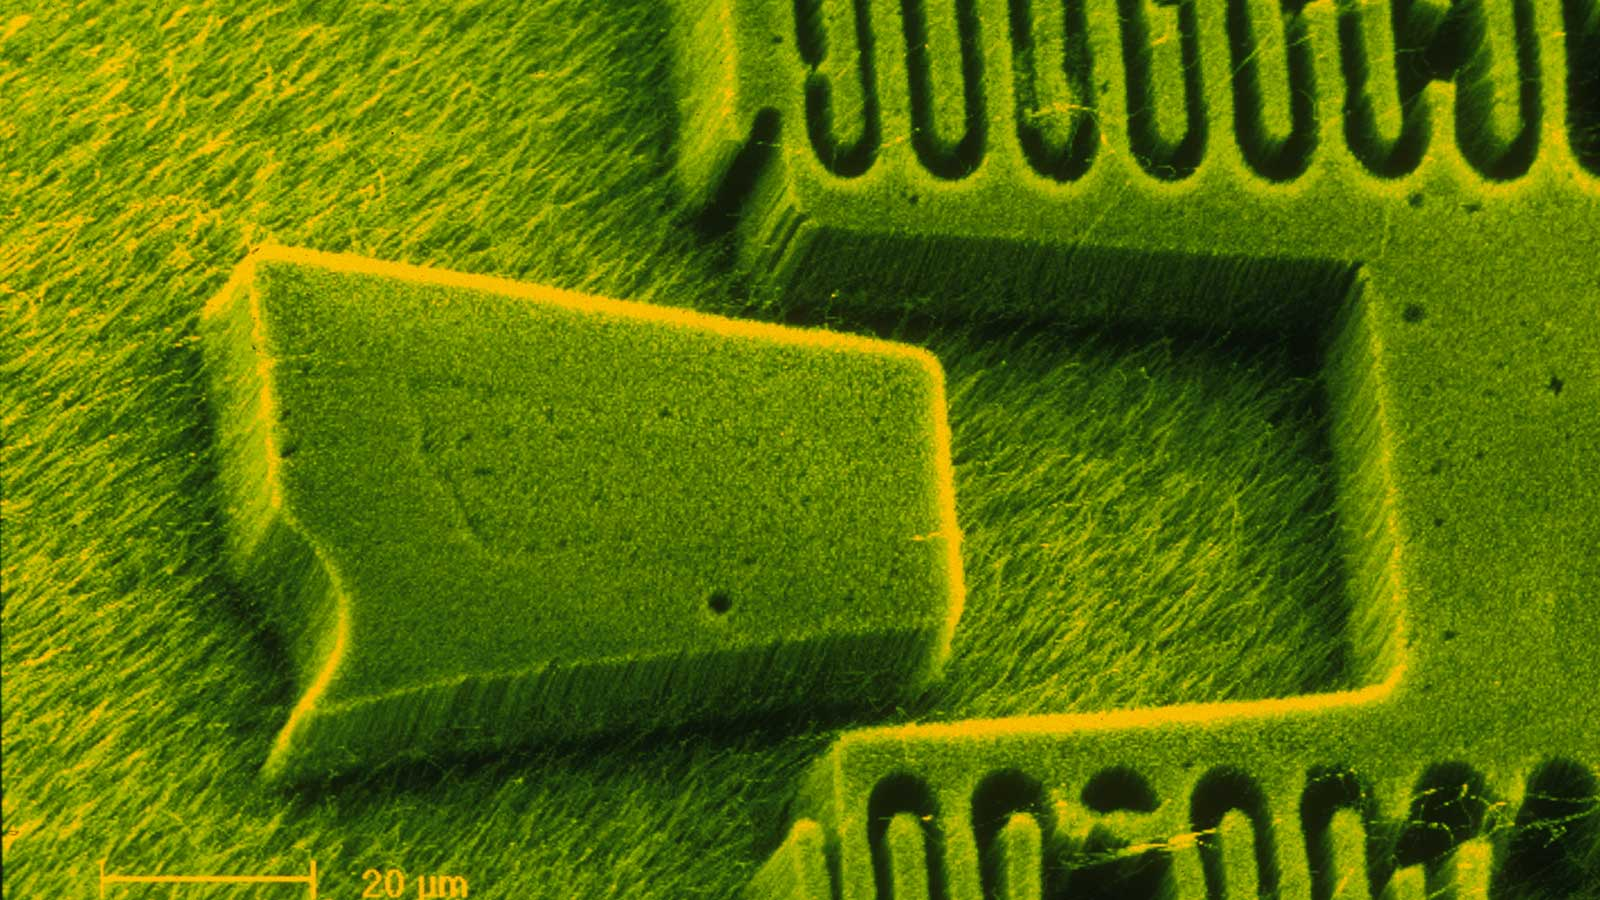 7 Nanotechnology Examples that Already Exist